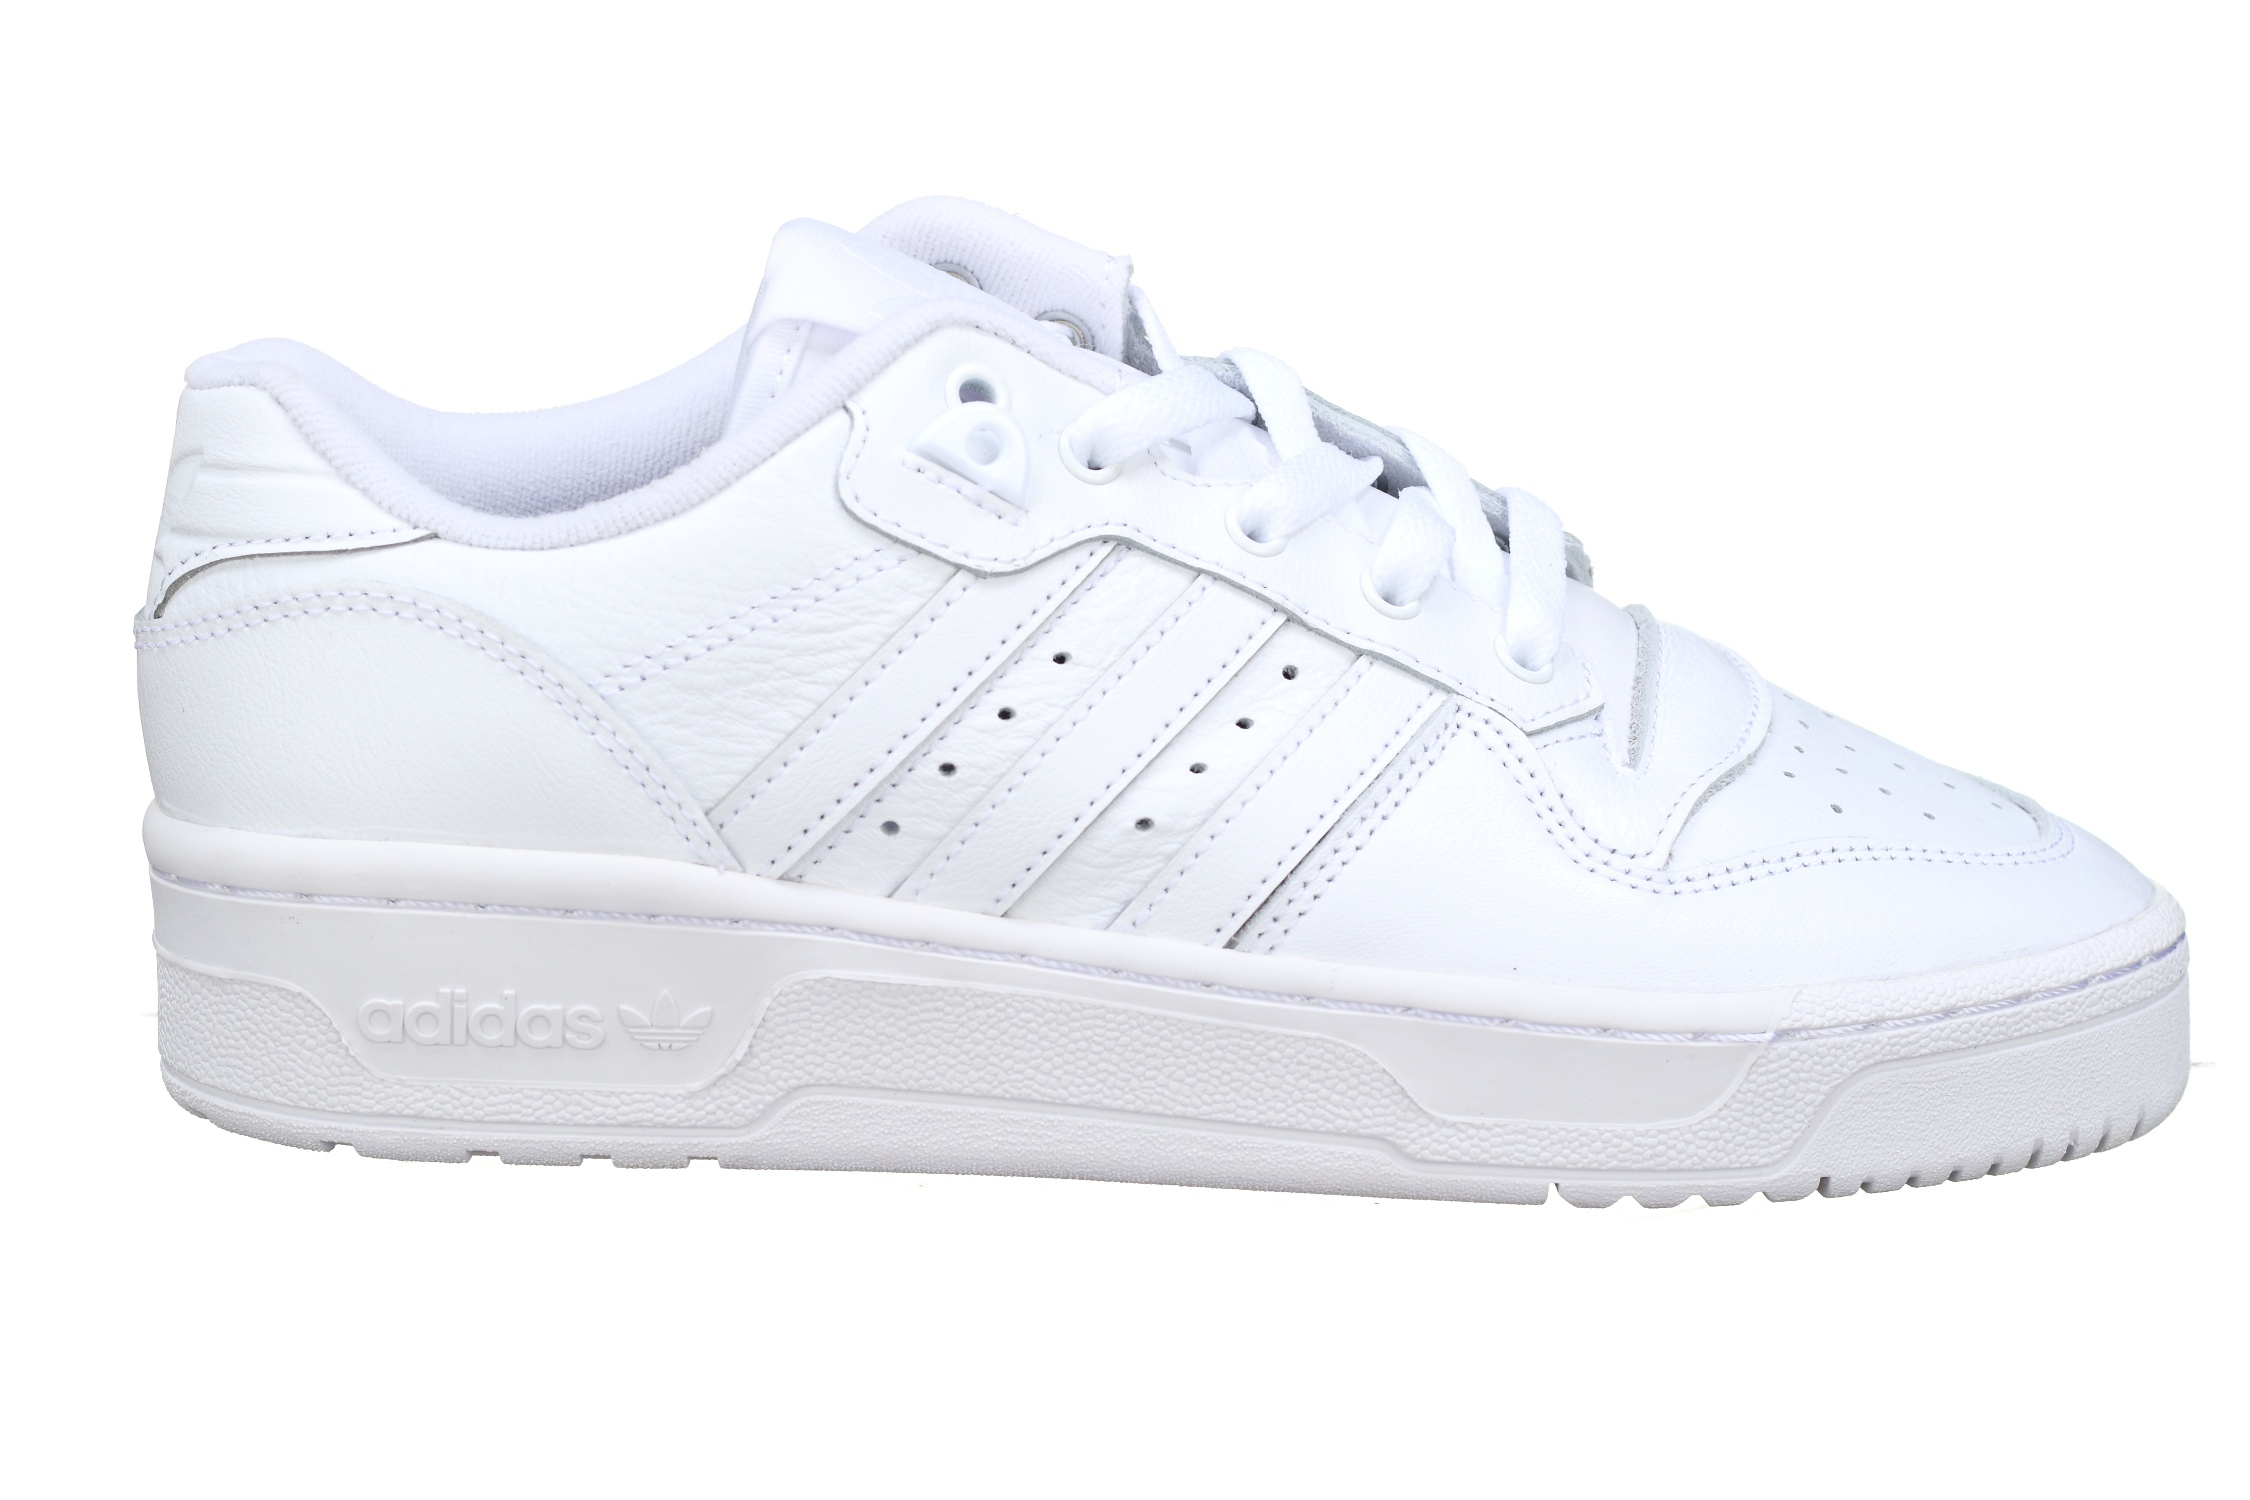 http://www.leadermode.com/176102/adidas-rivalry-low-ef8729-white.jpg